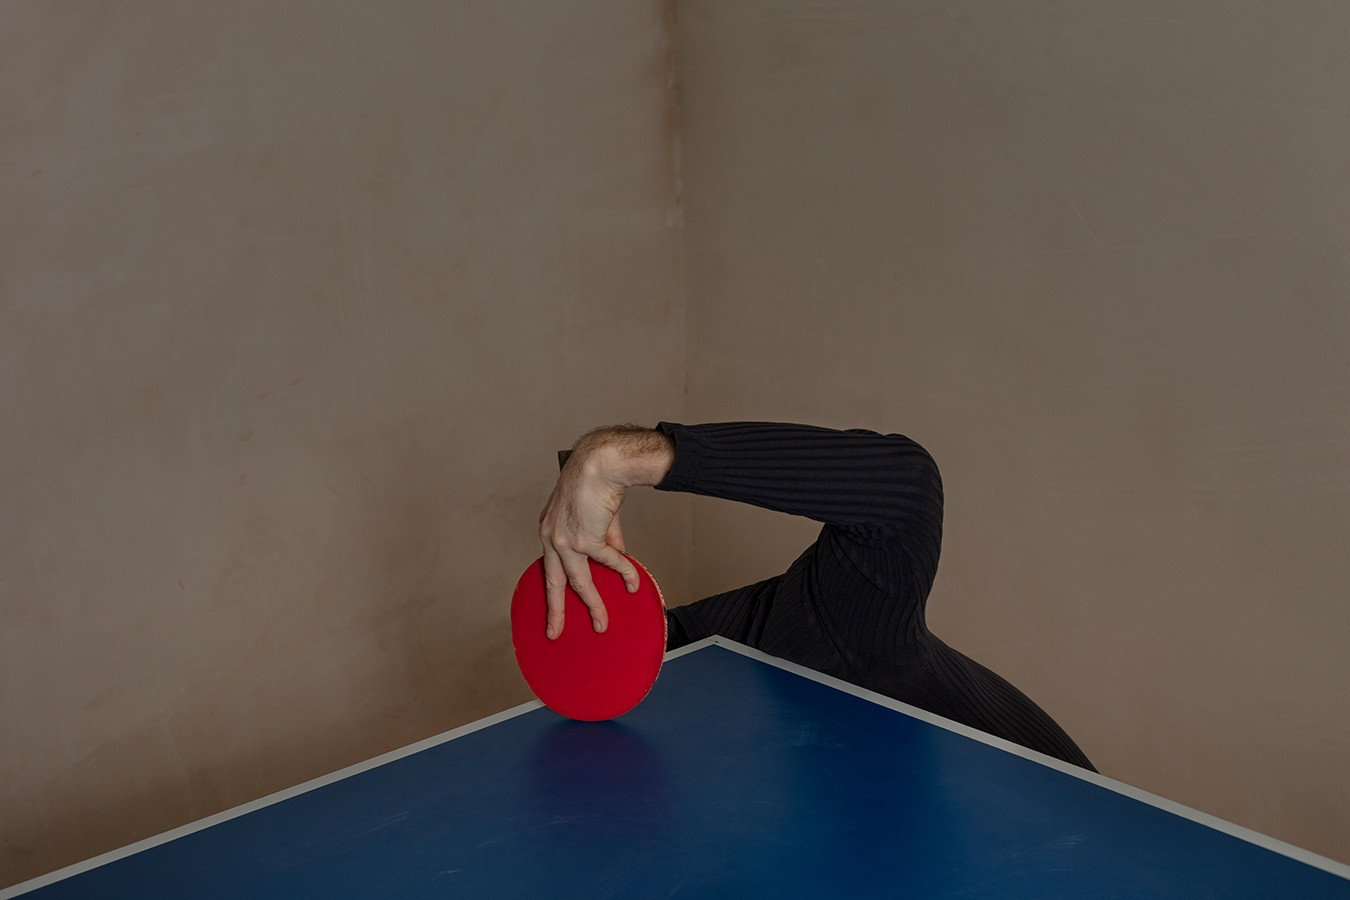 """Prozac: Self-Portrait with a Tennis Racket. """"Staying with his parents and lacking income as well as energy, he felt like a burden. Here he's cowering under the table tennis table, hardly even visible as a human."""""""